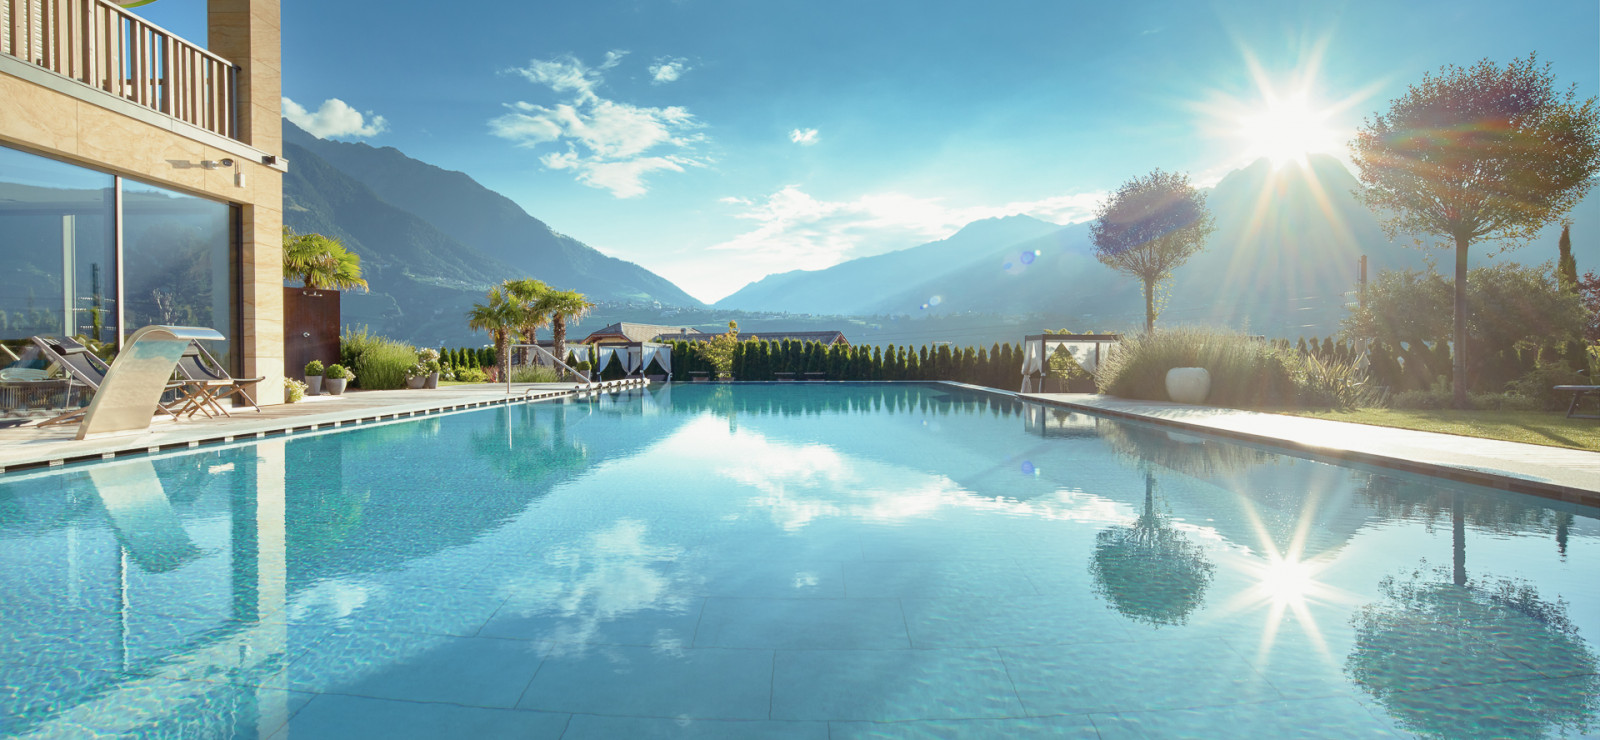 Wellnesshotel la maiena meran resort | Marling/Meran